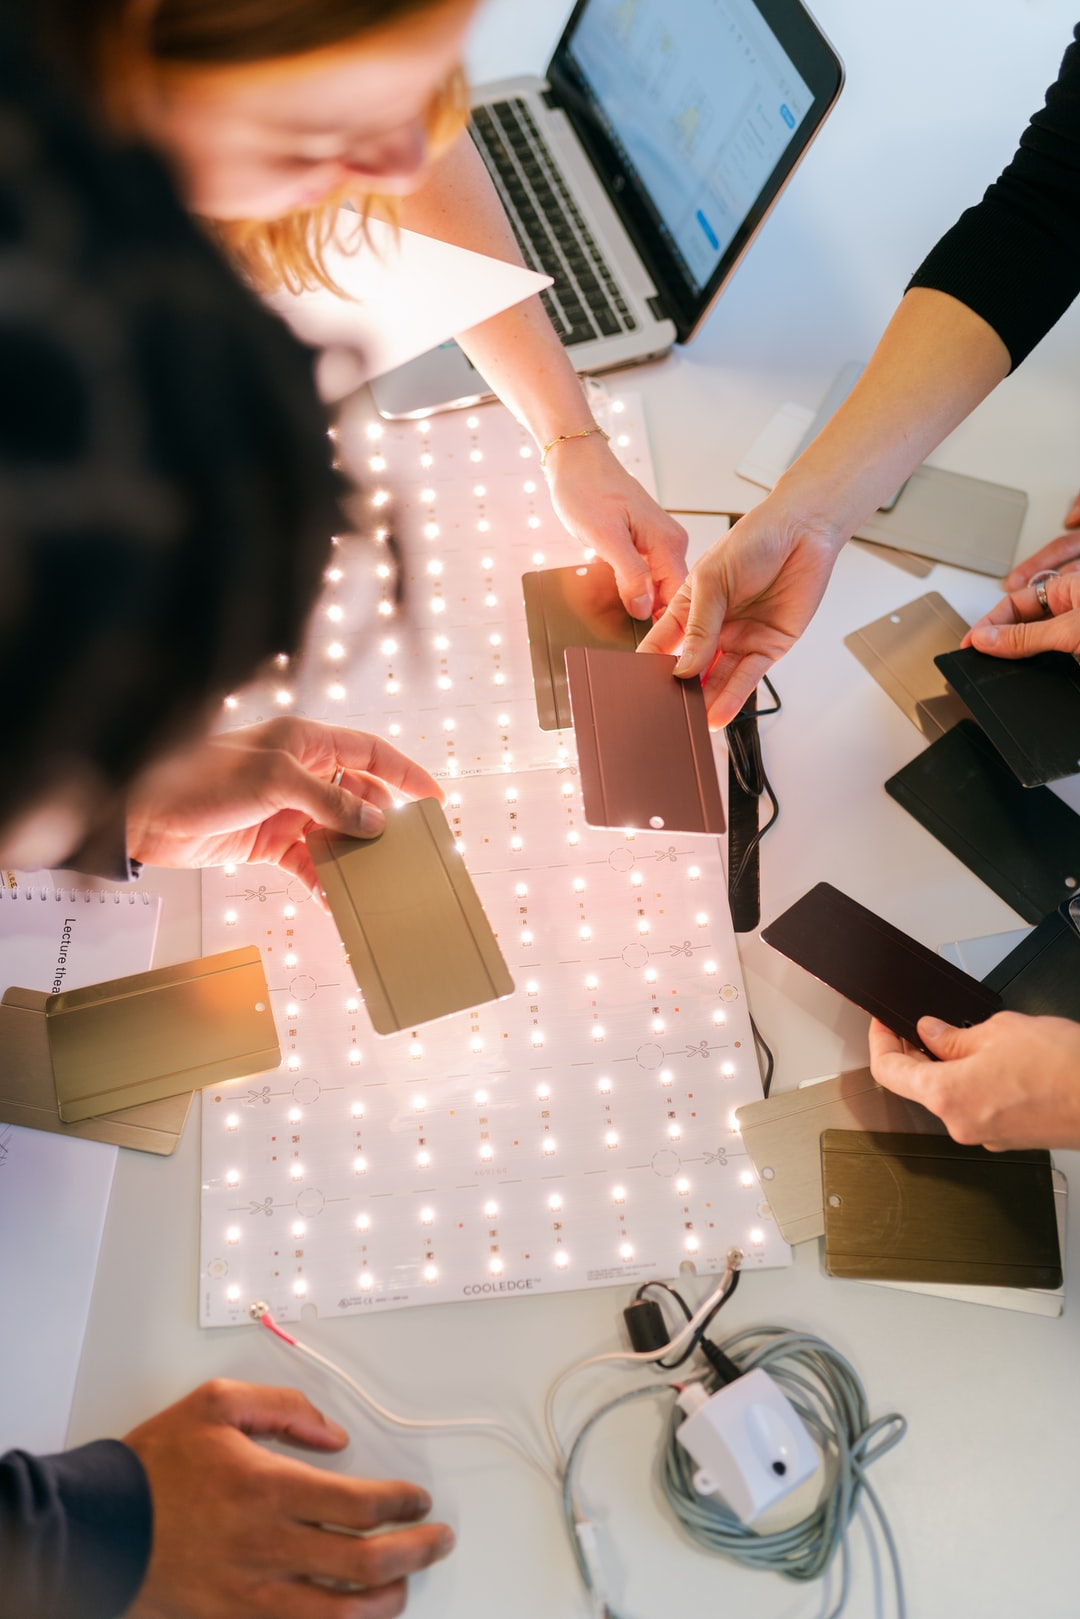 Female electrical engineer test materials for lighting with team